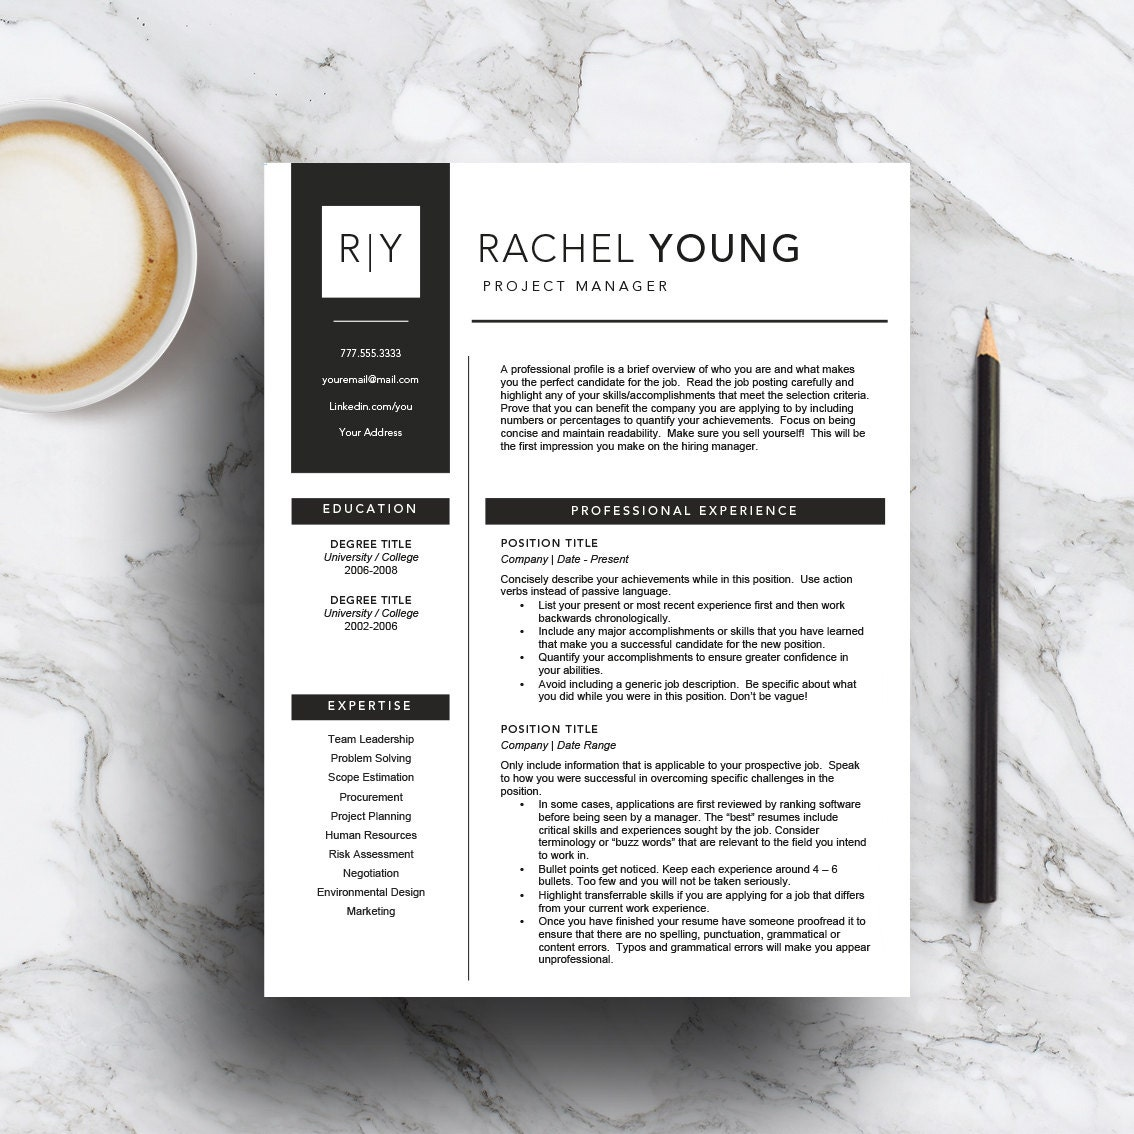 Modern Resume Template For Word 1 3 Page Resume Cover: Modern Resume Template For Word And Pages Includes 1 2 & 3